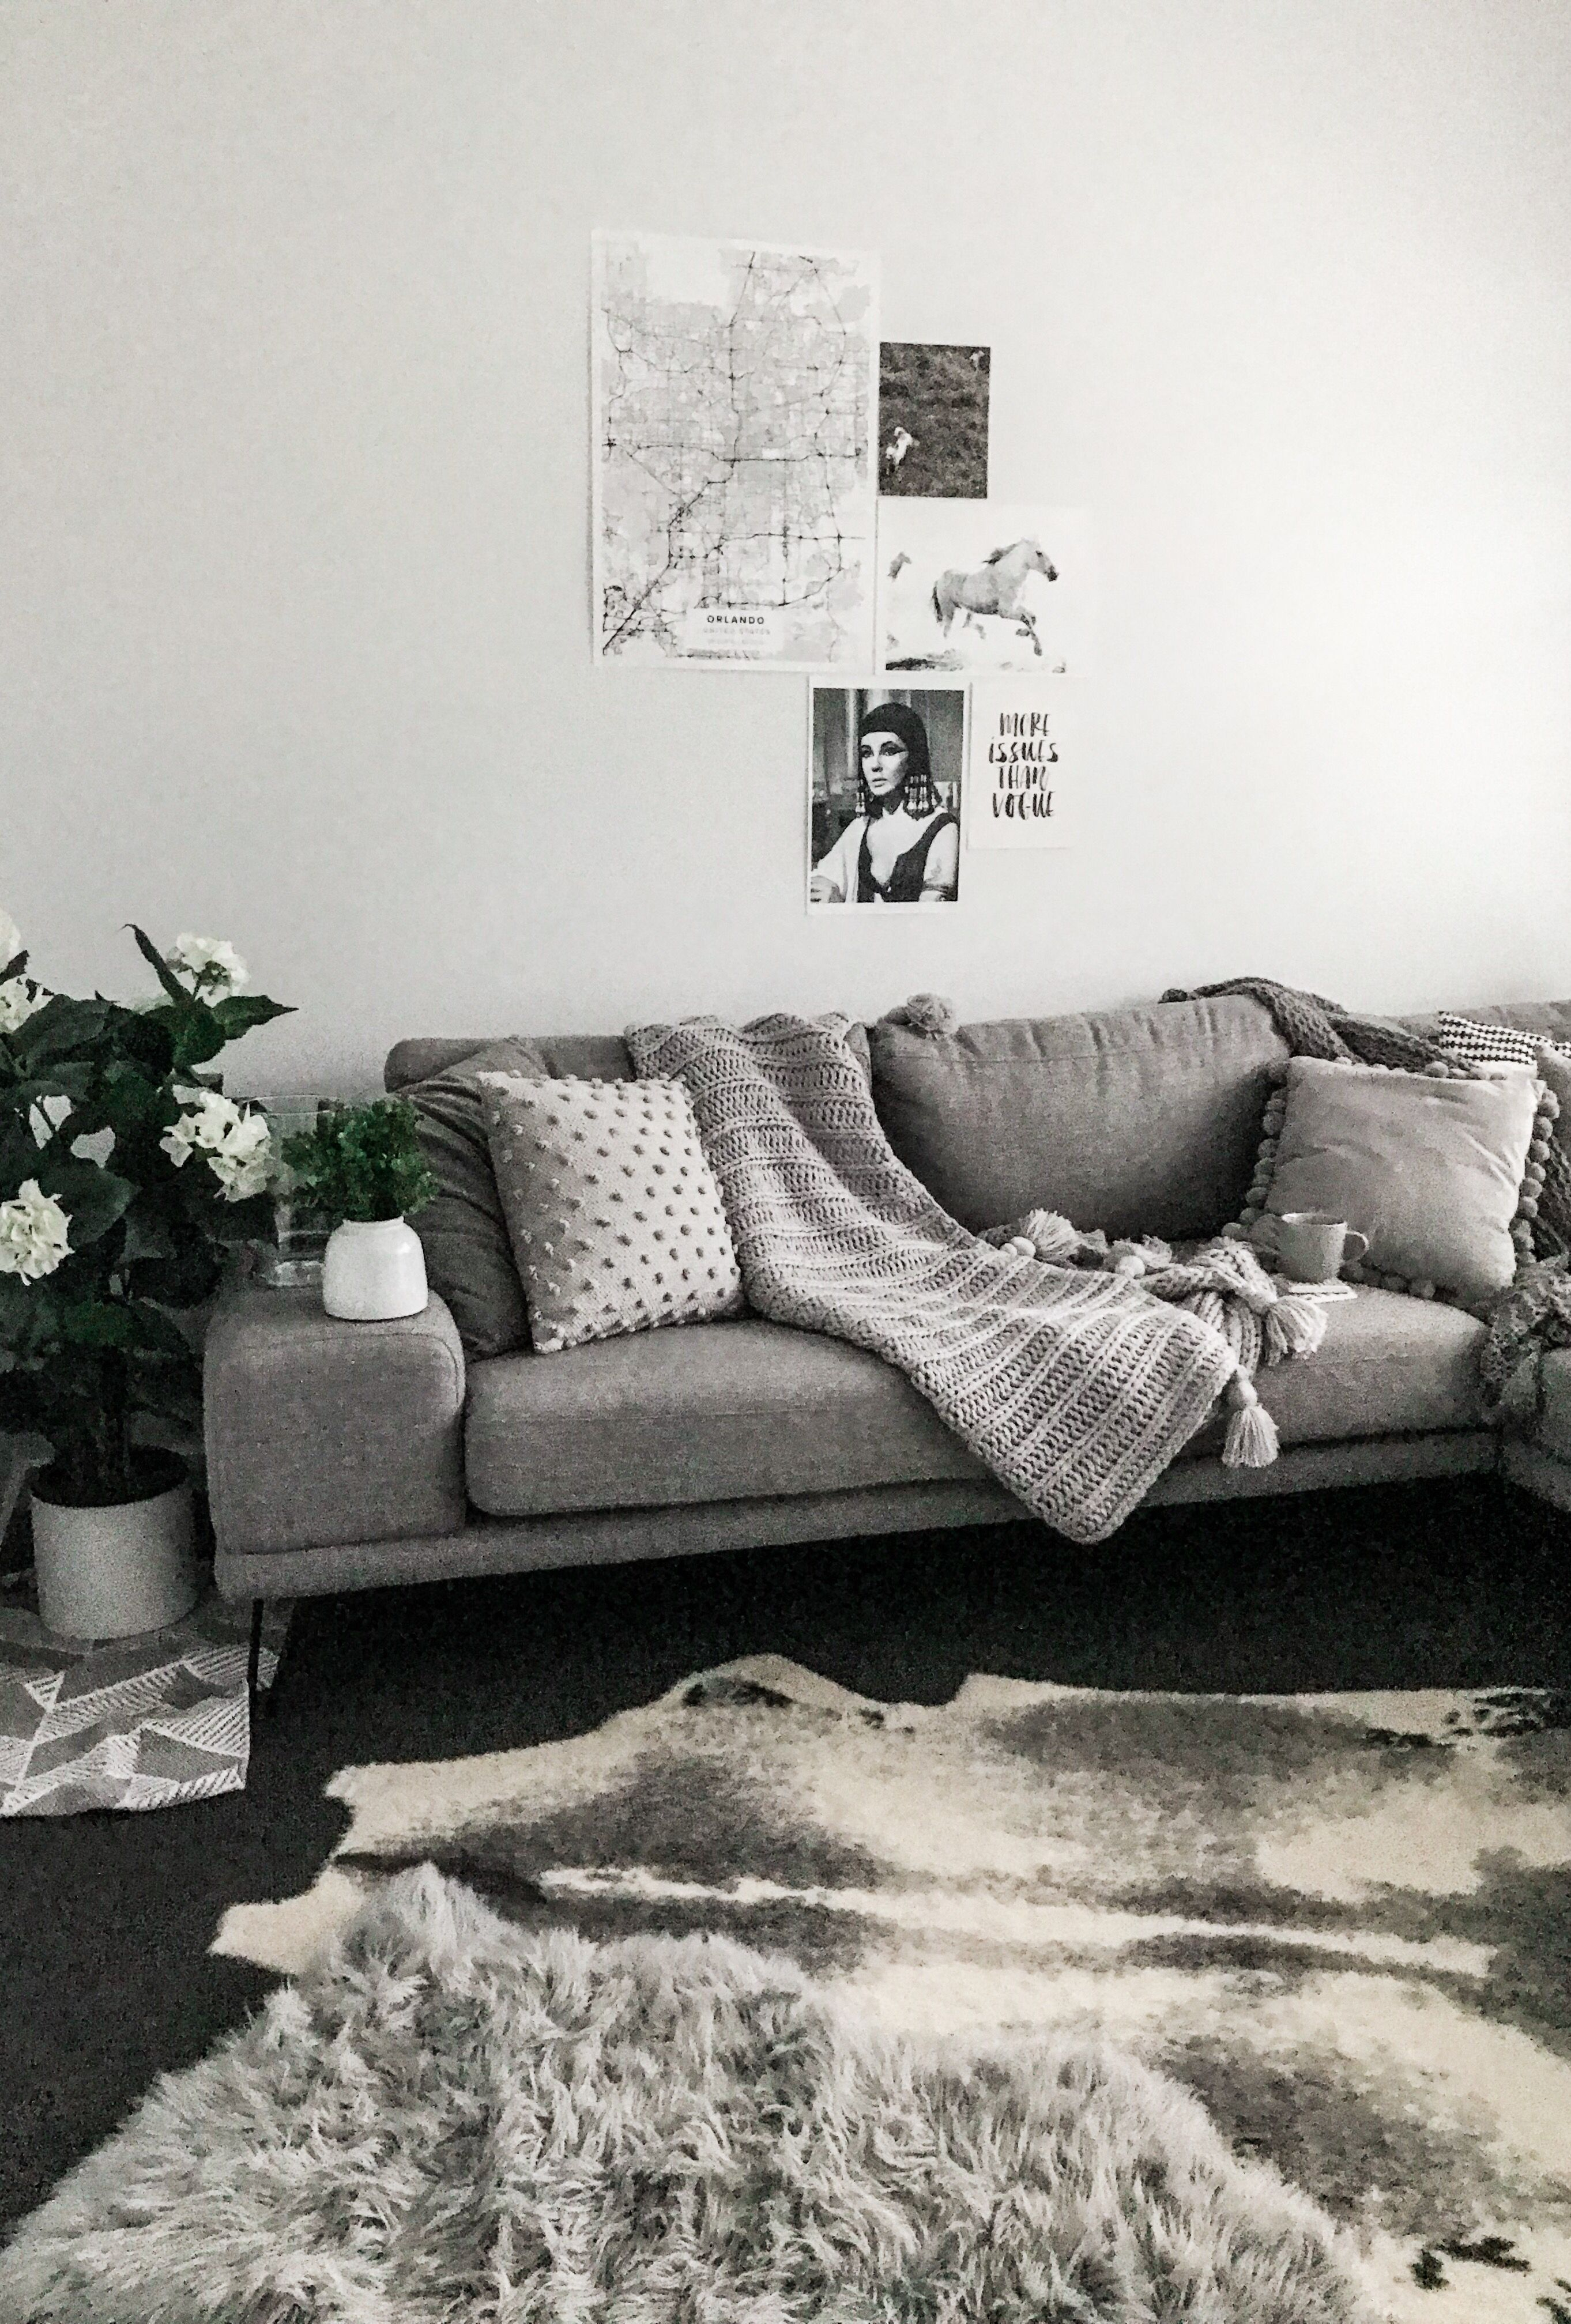 Textured Cushions Couch Throw Blanket